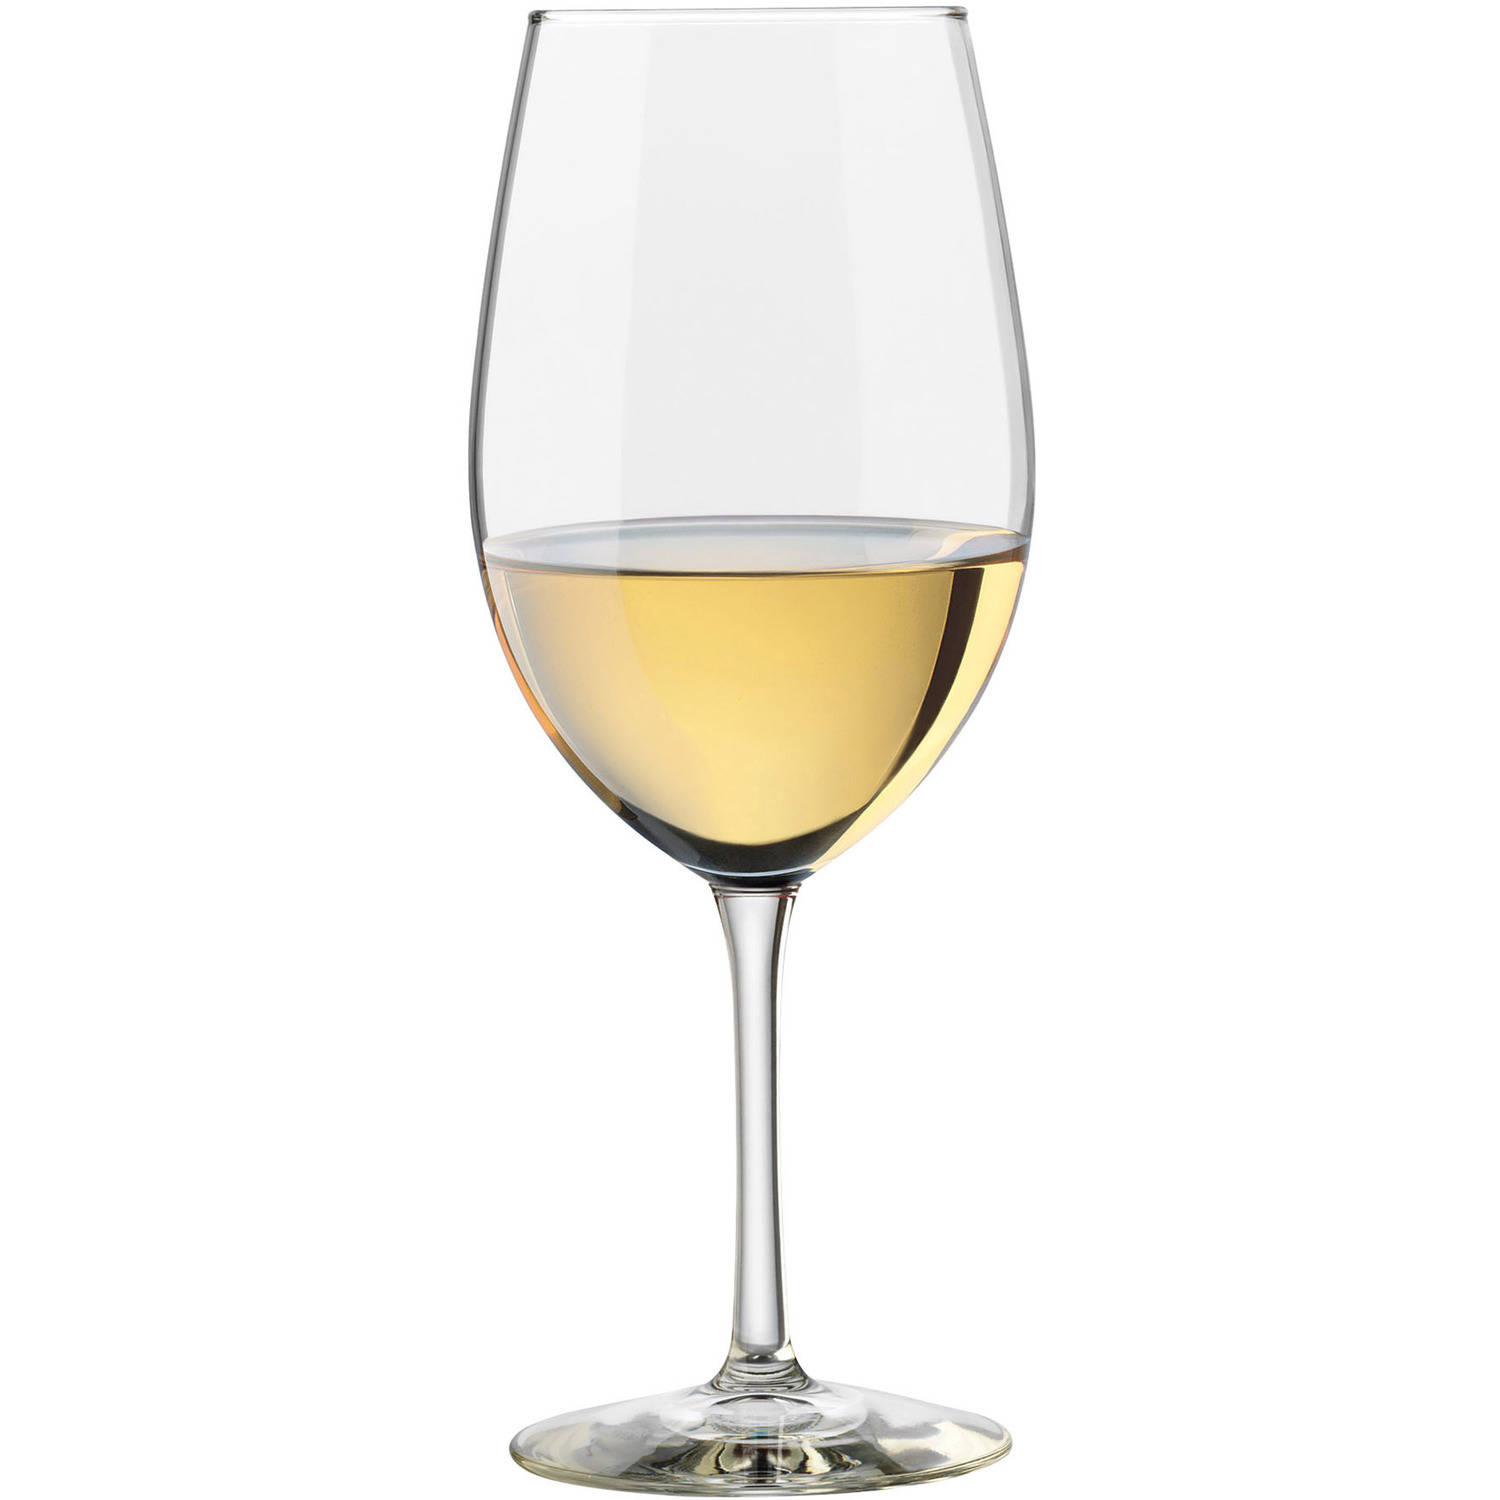 Chardonnay Wine Glass Libbey Vineyard 18 Oz Clear Chardonnay Glasses Set Of 8